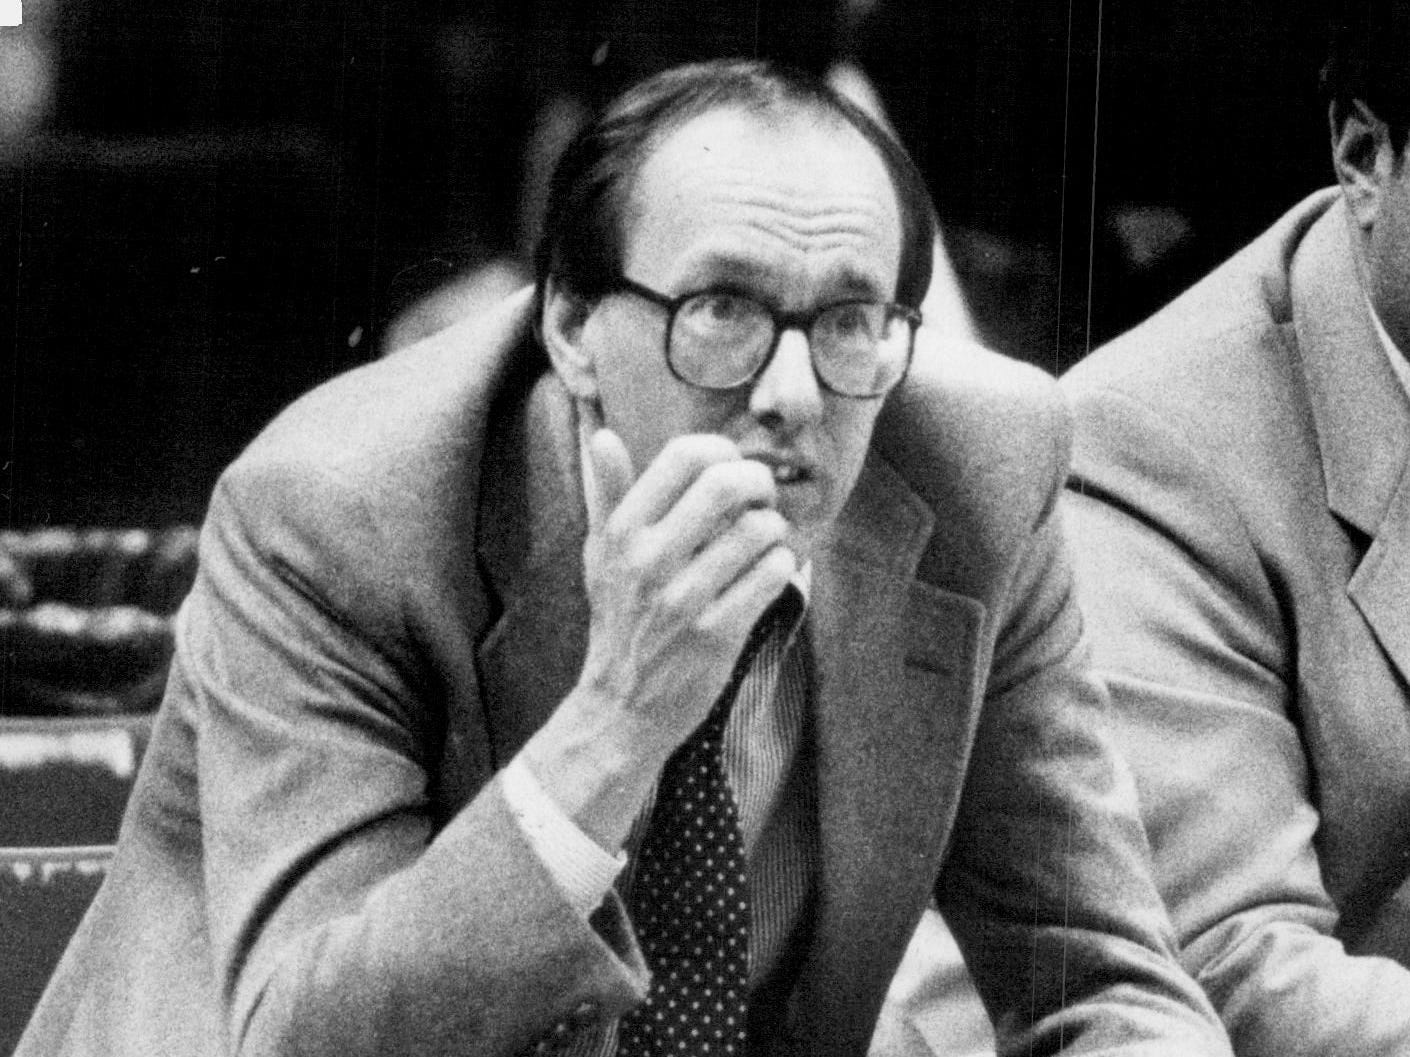 Syracuse coach Jim Boeheim bites his fingernails during an 82-76 win over Providence on Feb. 12, 1985. The victory was the 199th of Boeheim's career